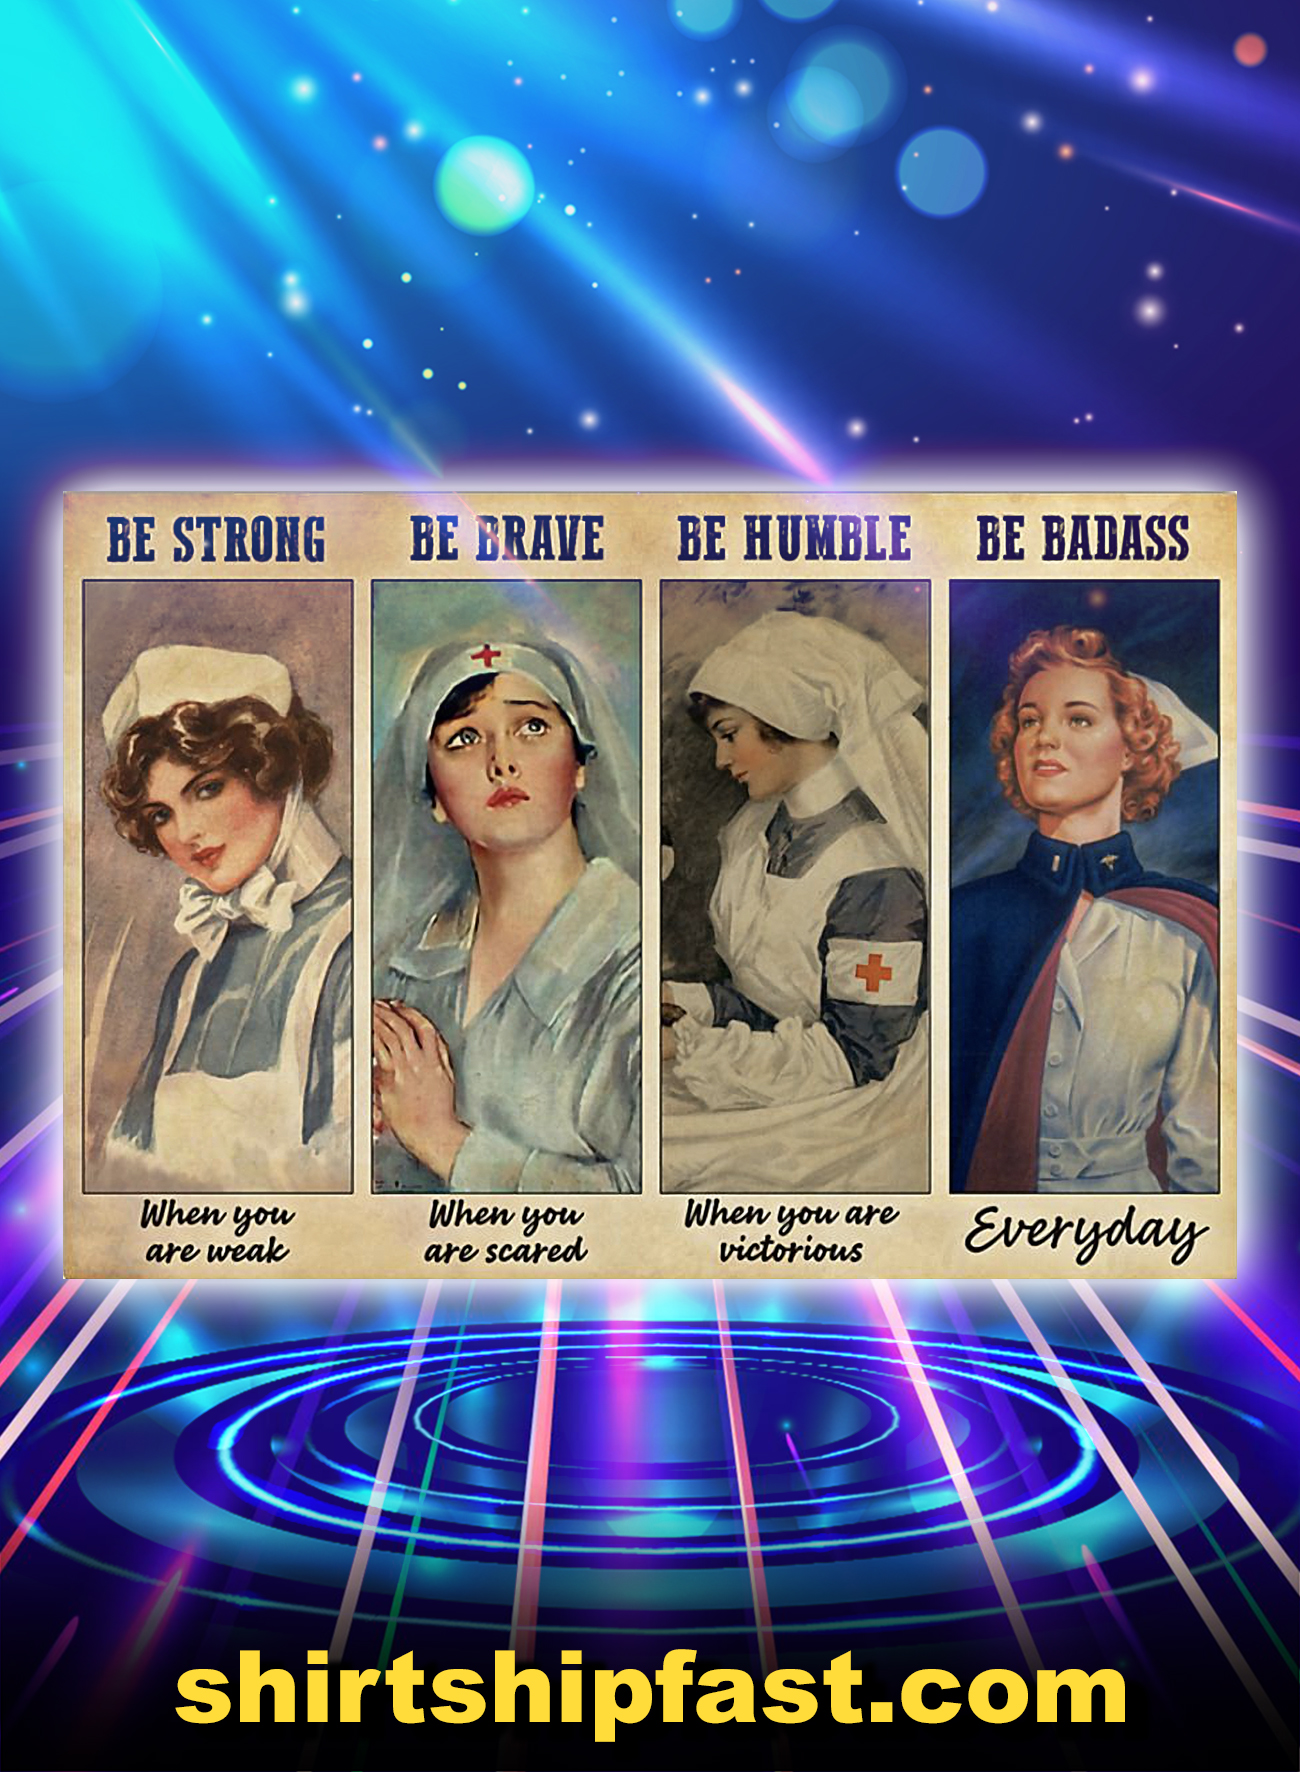 Nurse be strong be brave be humble be badass poster